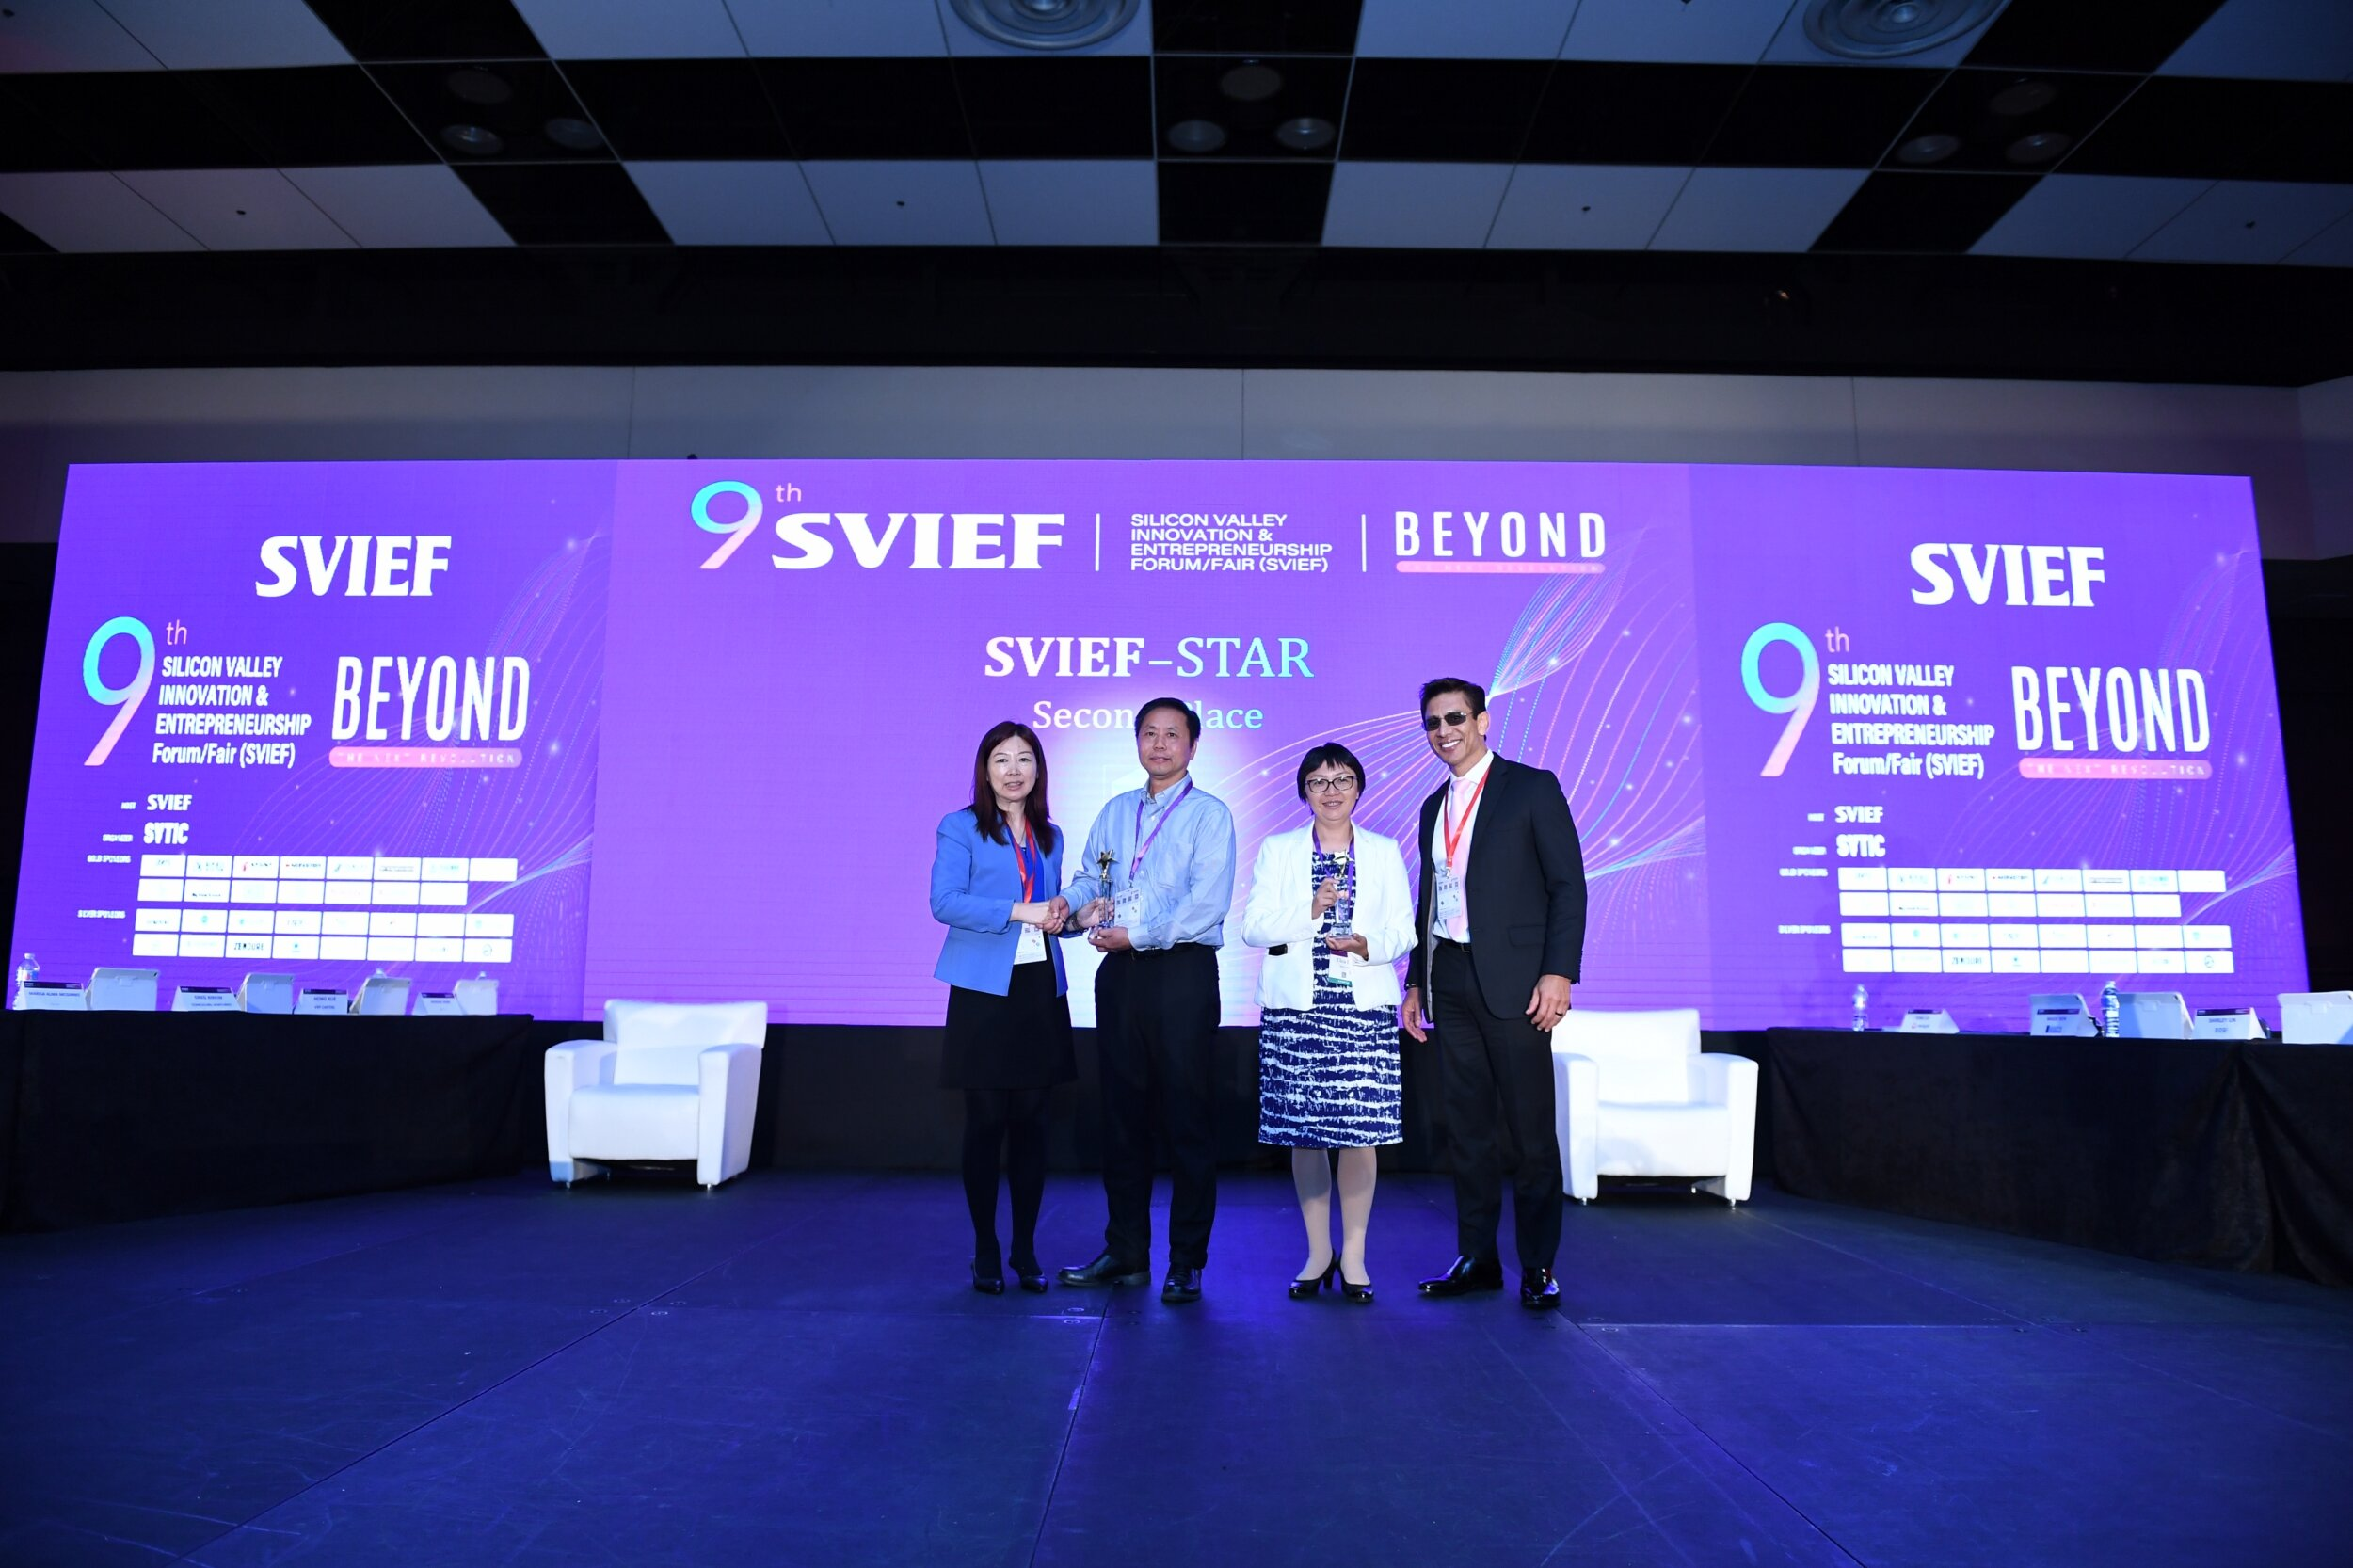 The VisionX team won 2nd place in the 9th SVIEF-Star startup final competition on September 8th at The Santa Clara Convention center in California (USA). The 15 finalists in 2019 were selected from 60+ teams.